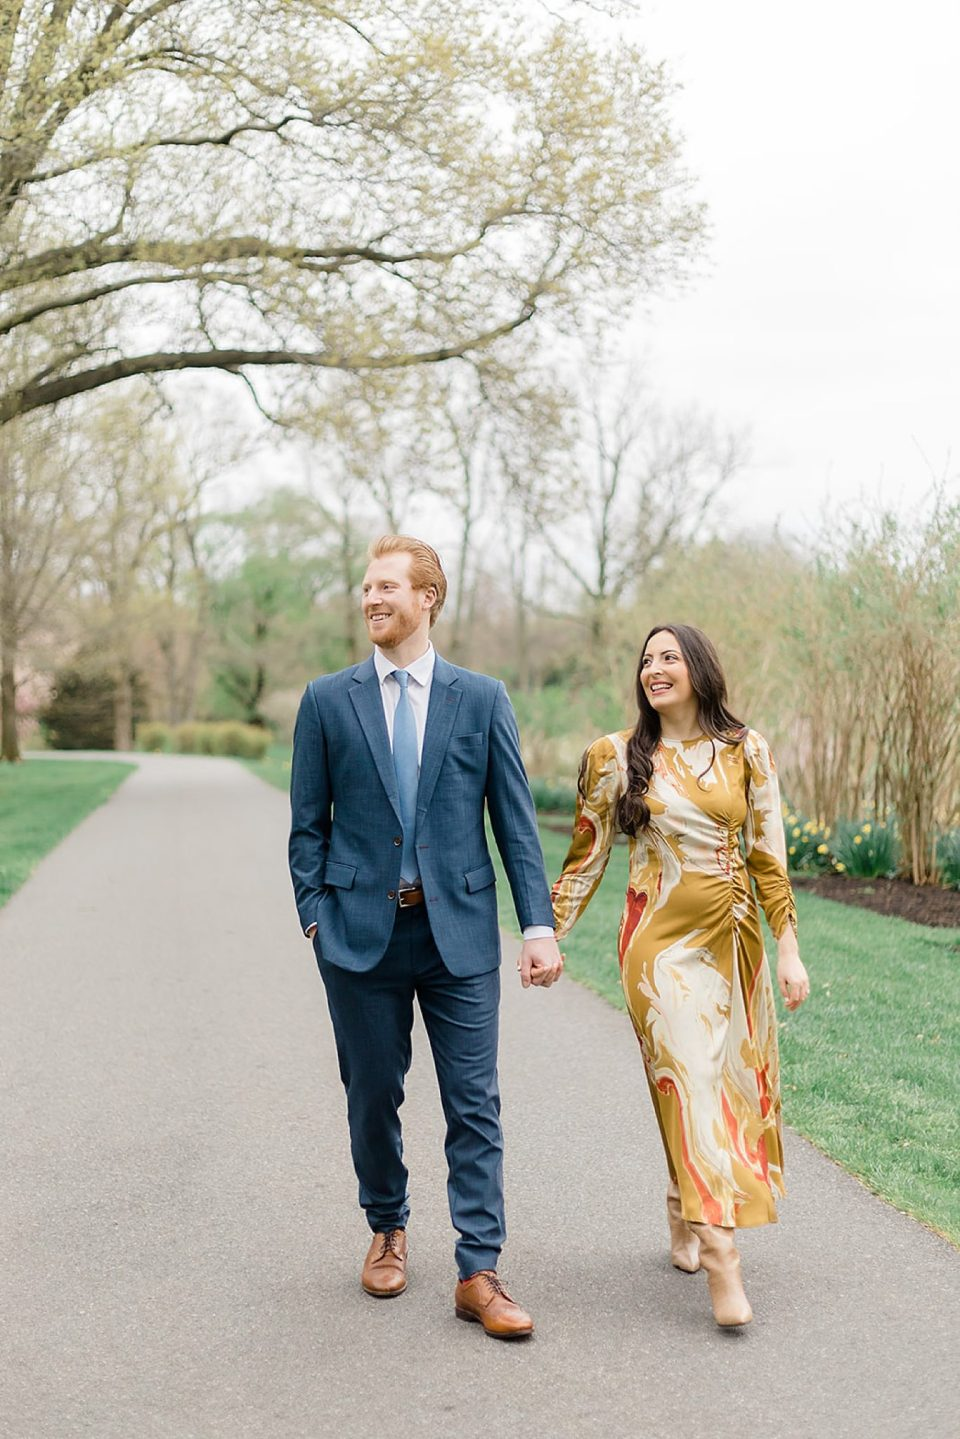 Alfred I. DuPont Hospital for Children Mansion Grounds Engagement Photography by Magdalena Studios 0001 scaled